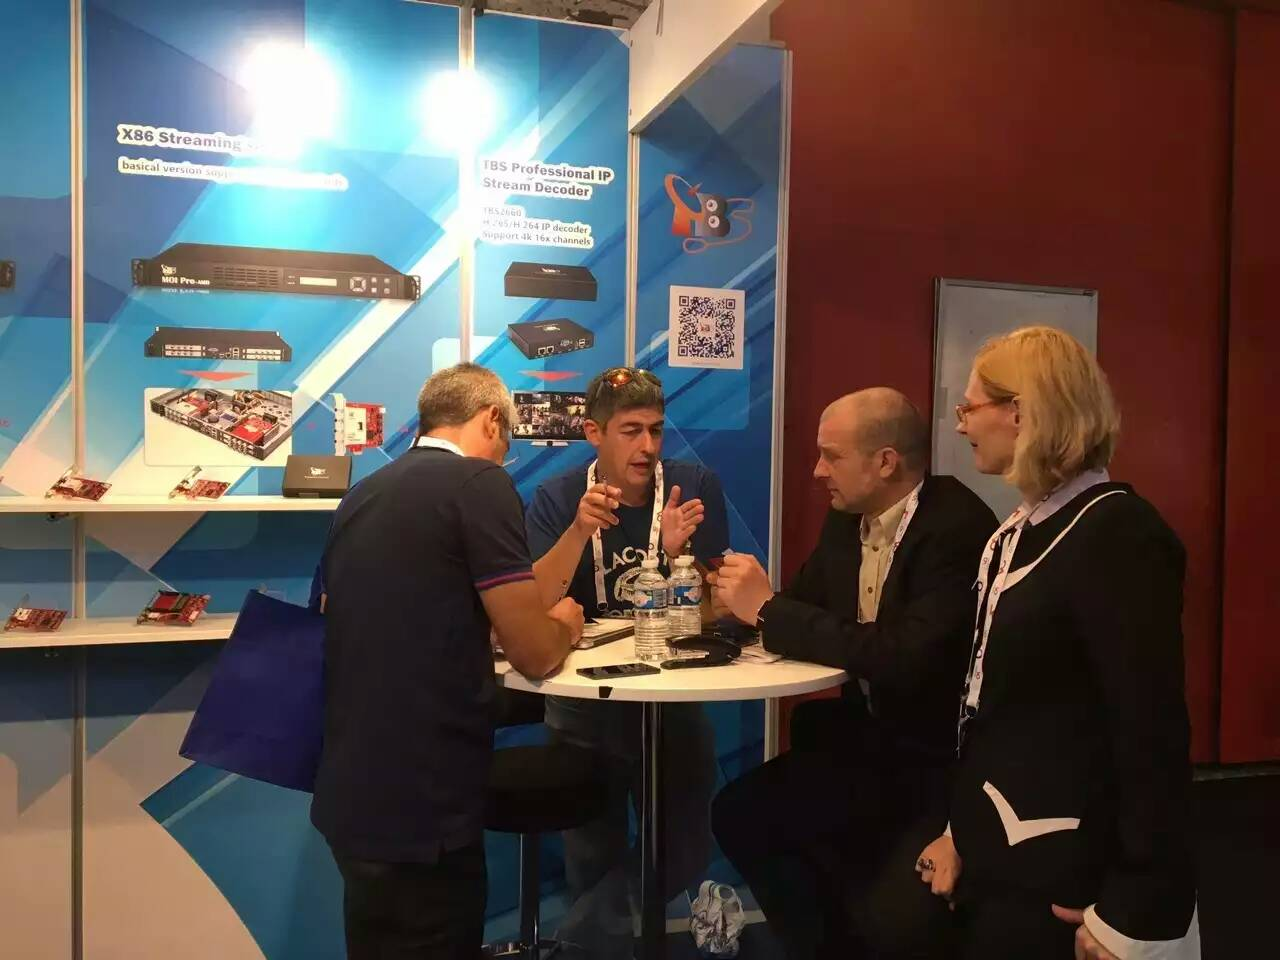 tbsibc-2016-in-amsterdam-5-c69-rai-exhibition-9-13-september-10